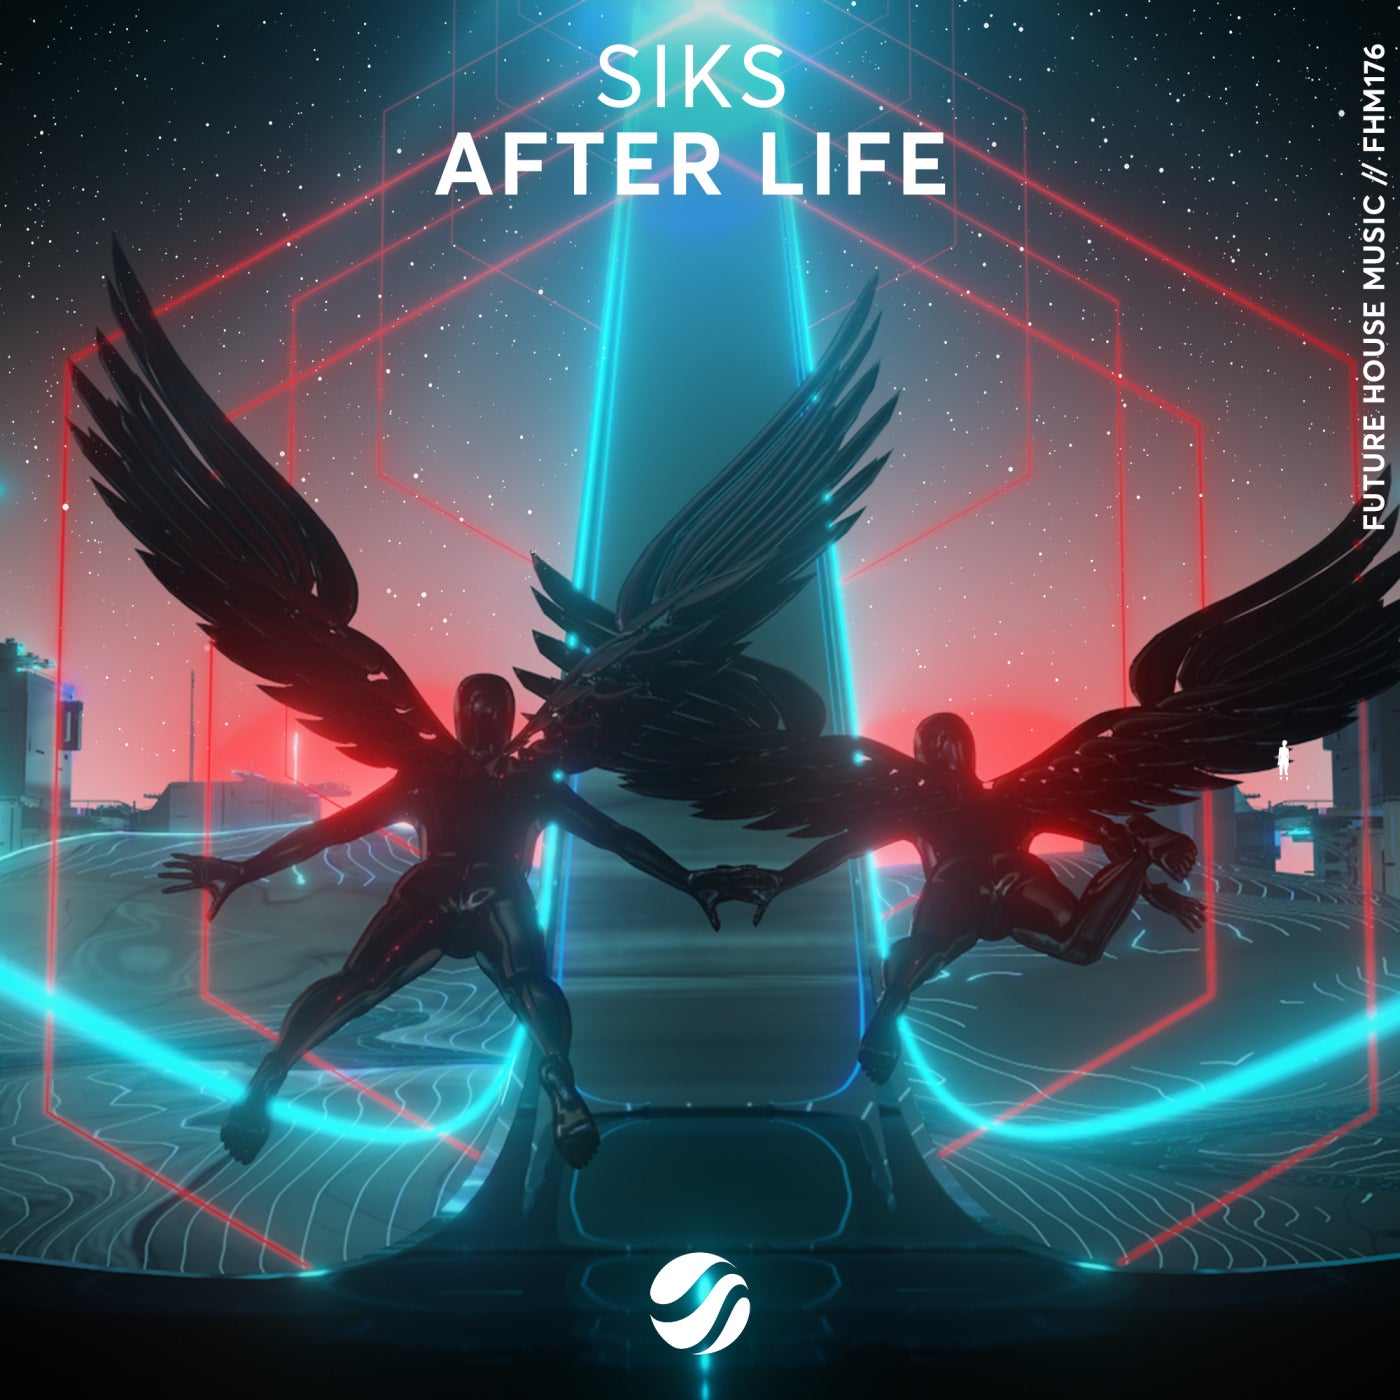 After Life (Extended Mix)